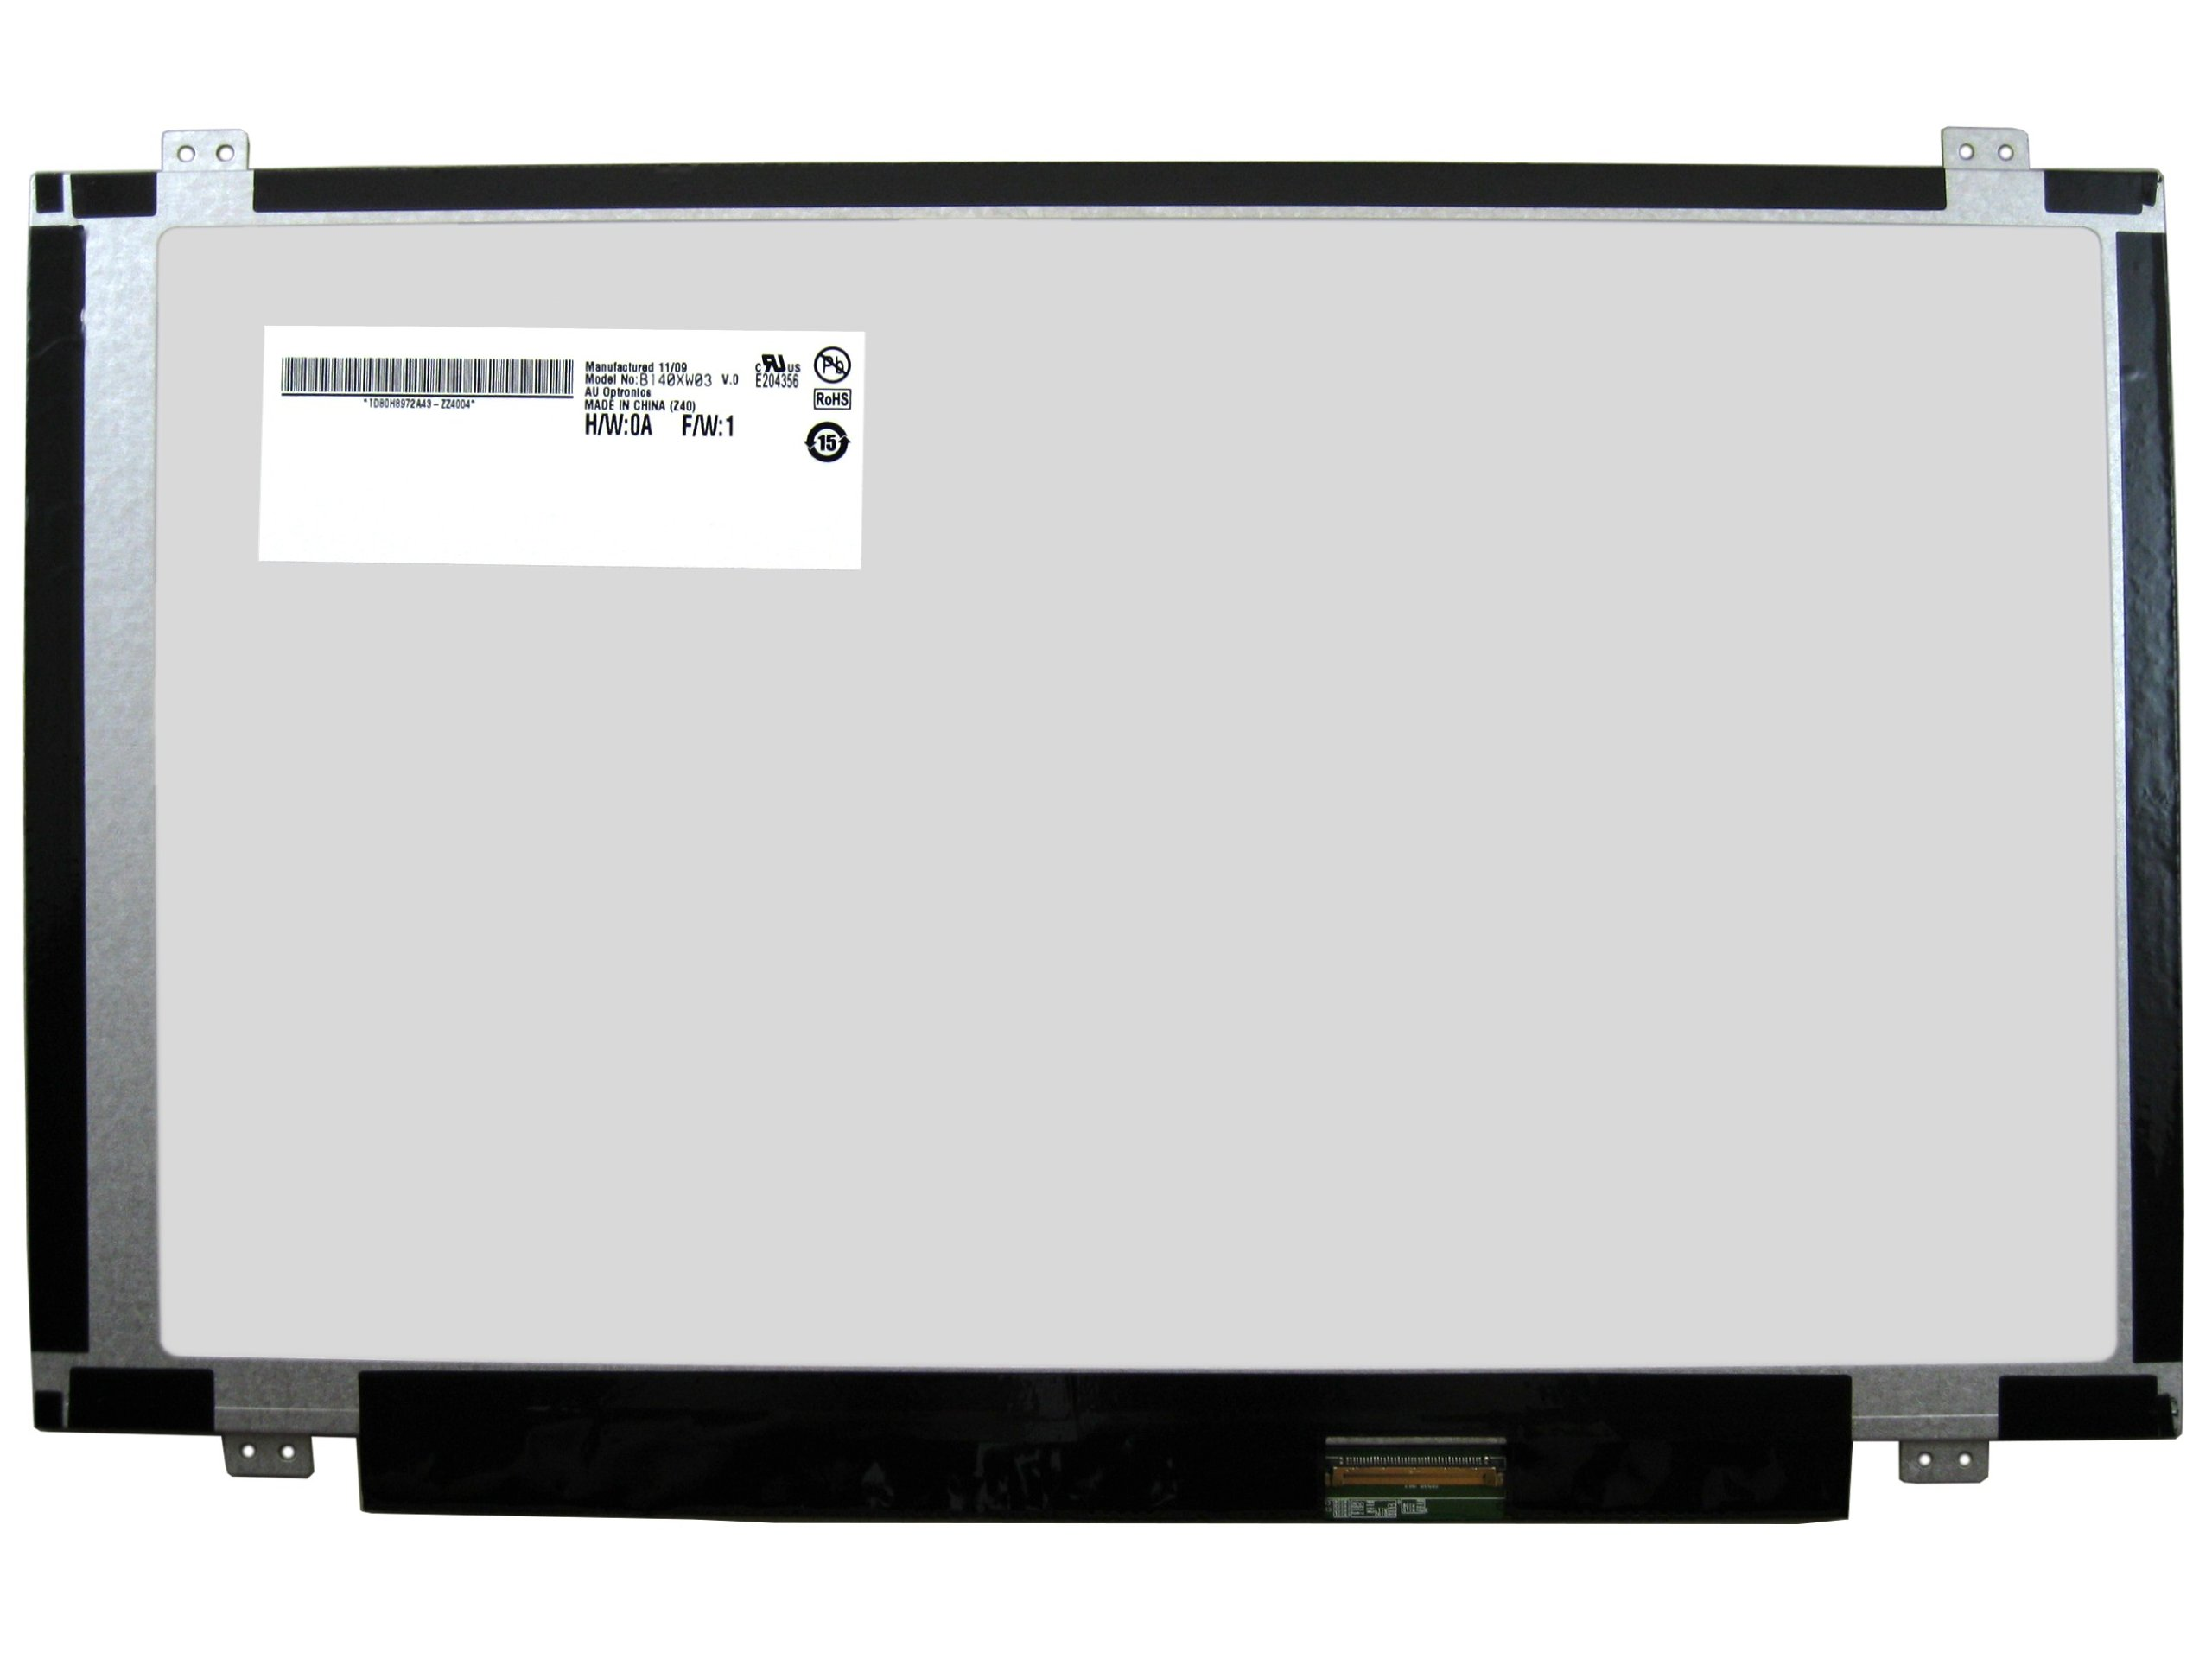 CMI N140BGE-L42 / N140BGE-LB2 New 14.0'' Slim Laptop LED LCD Screen with Glossy Finish and HD WXGA 1366 x 768 Resolution (or compatible model)